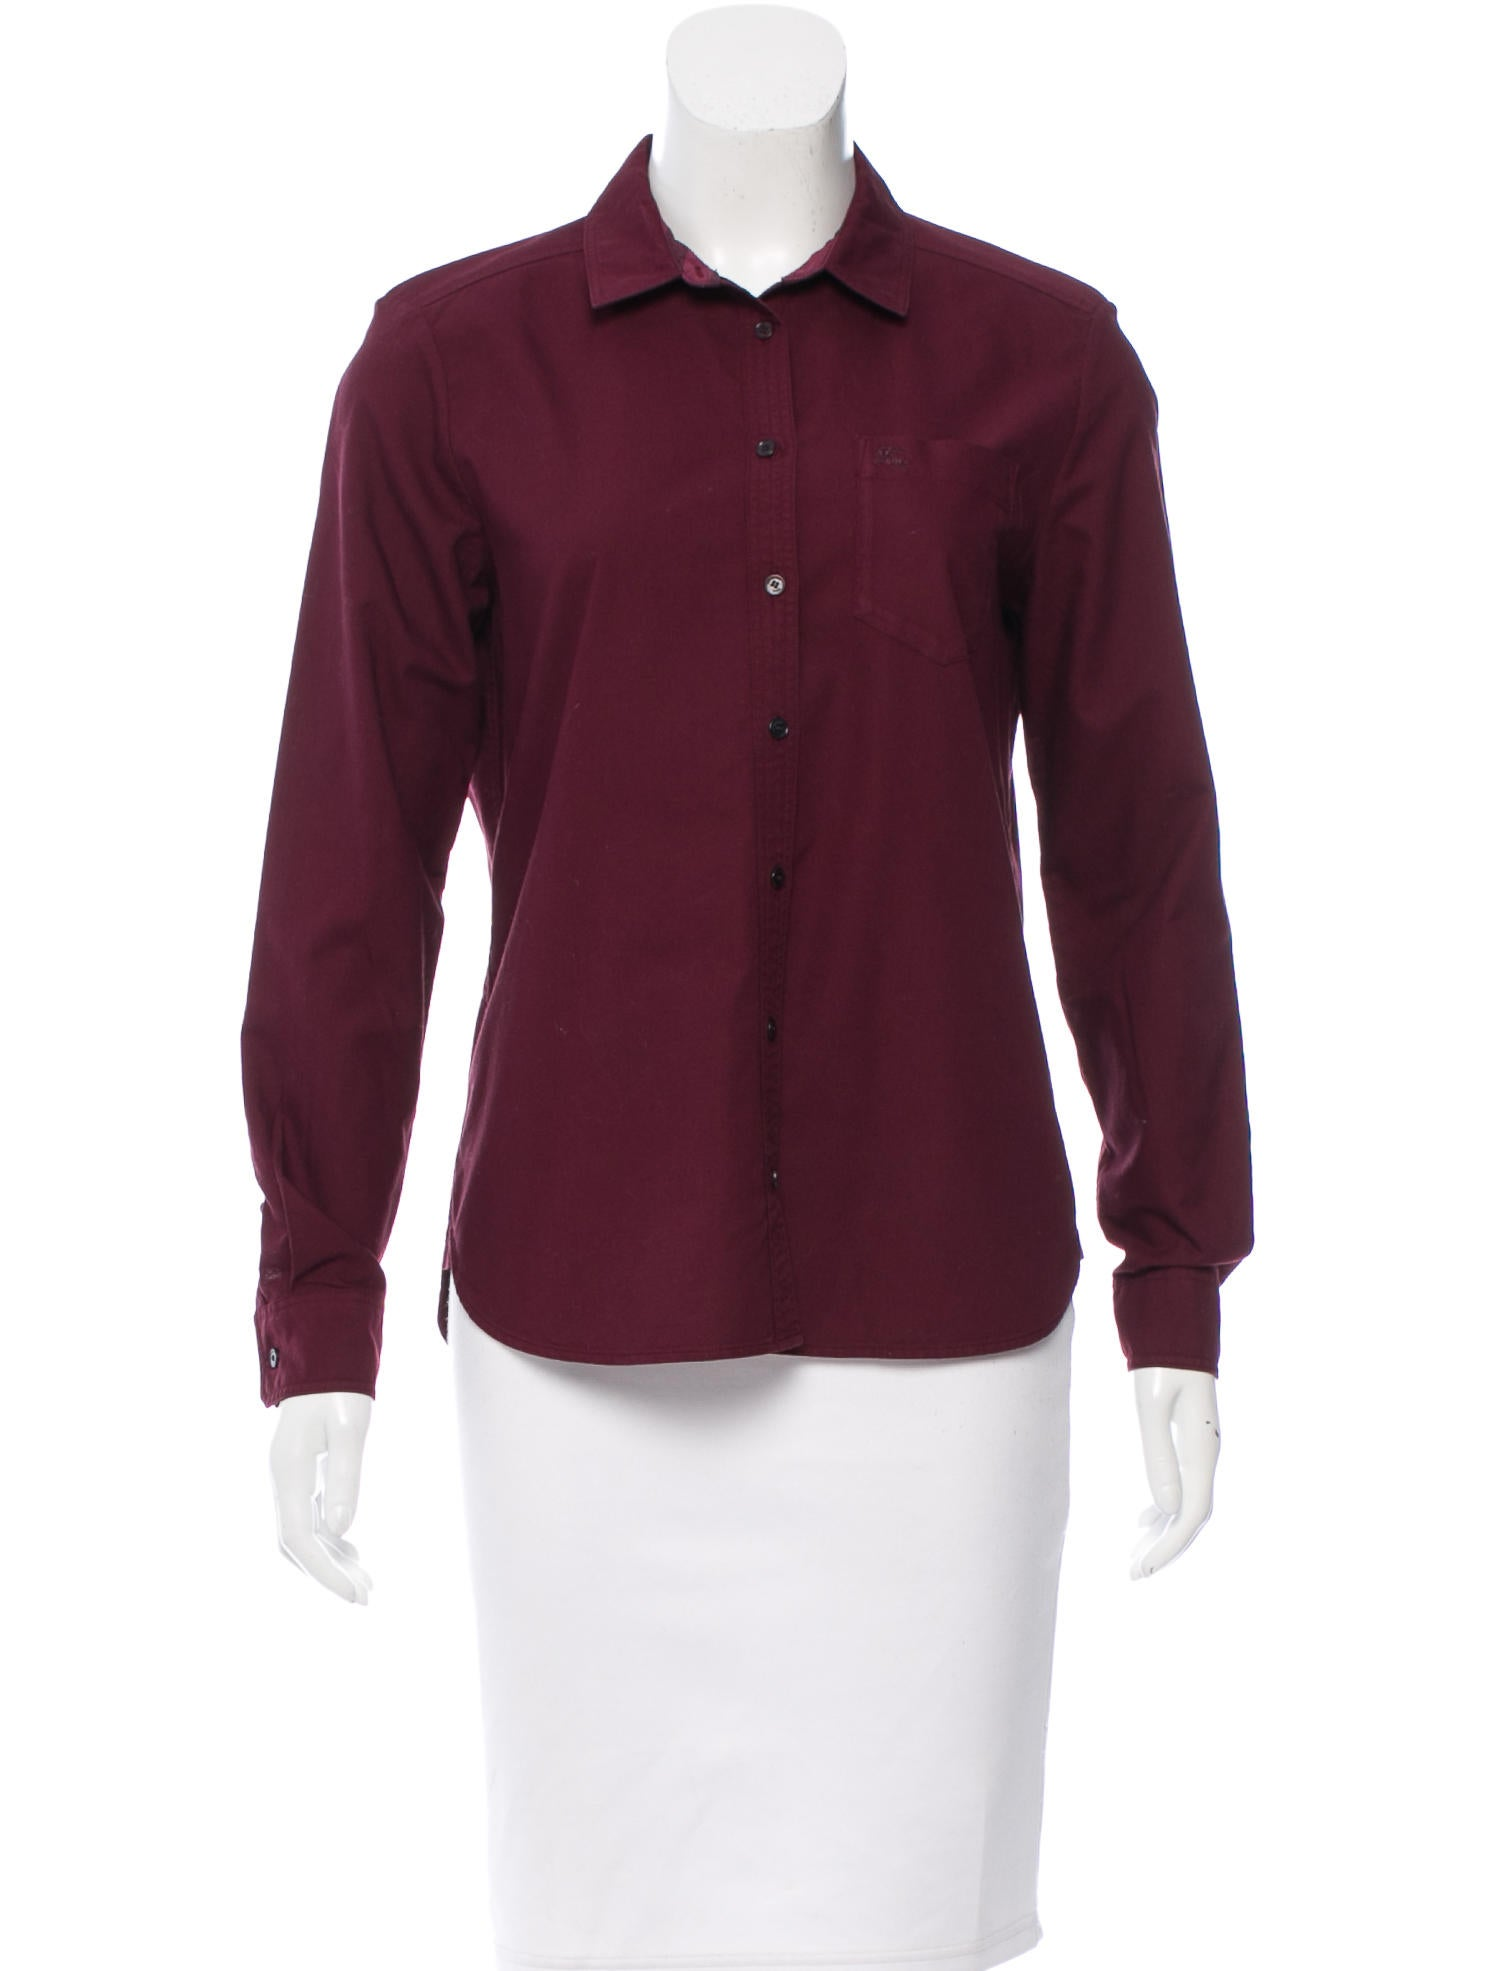 Burberry brit collared button up top clothing bbr25301 for Women s collared button up shirts